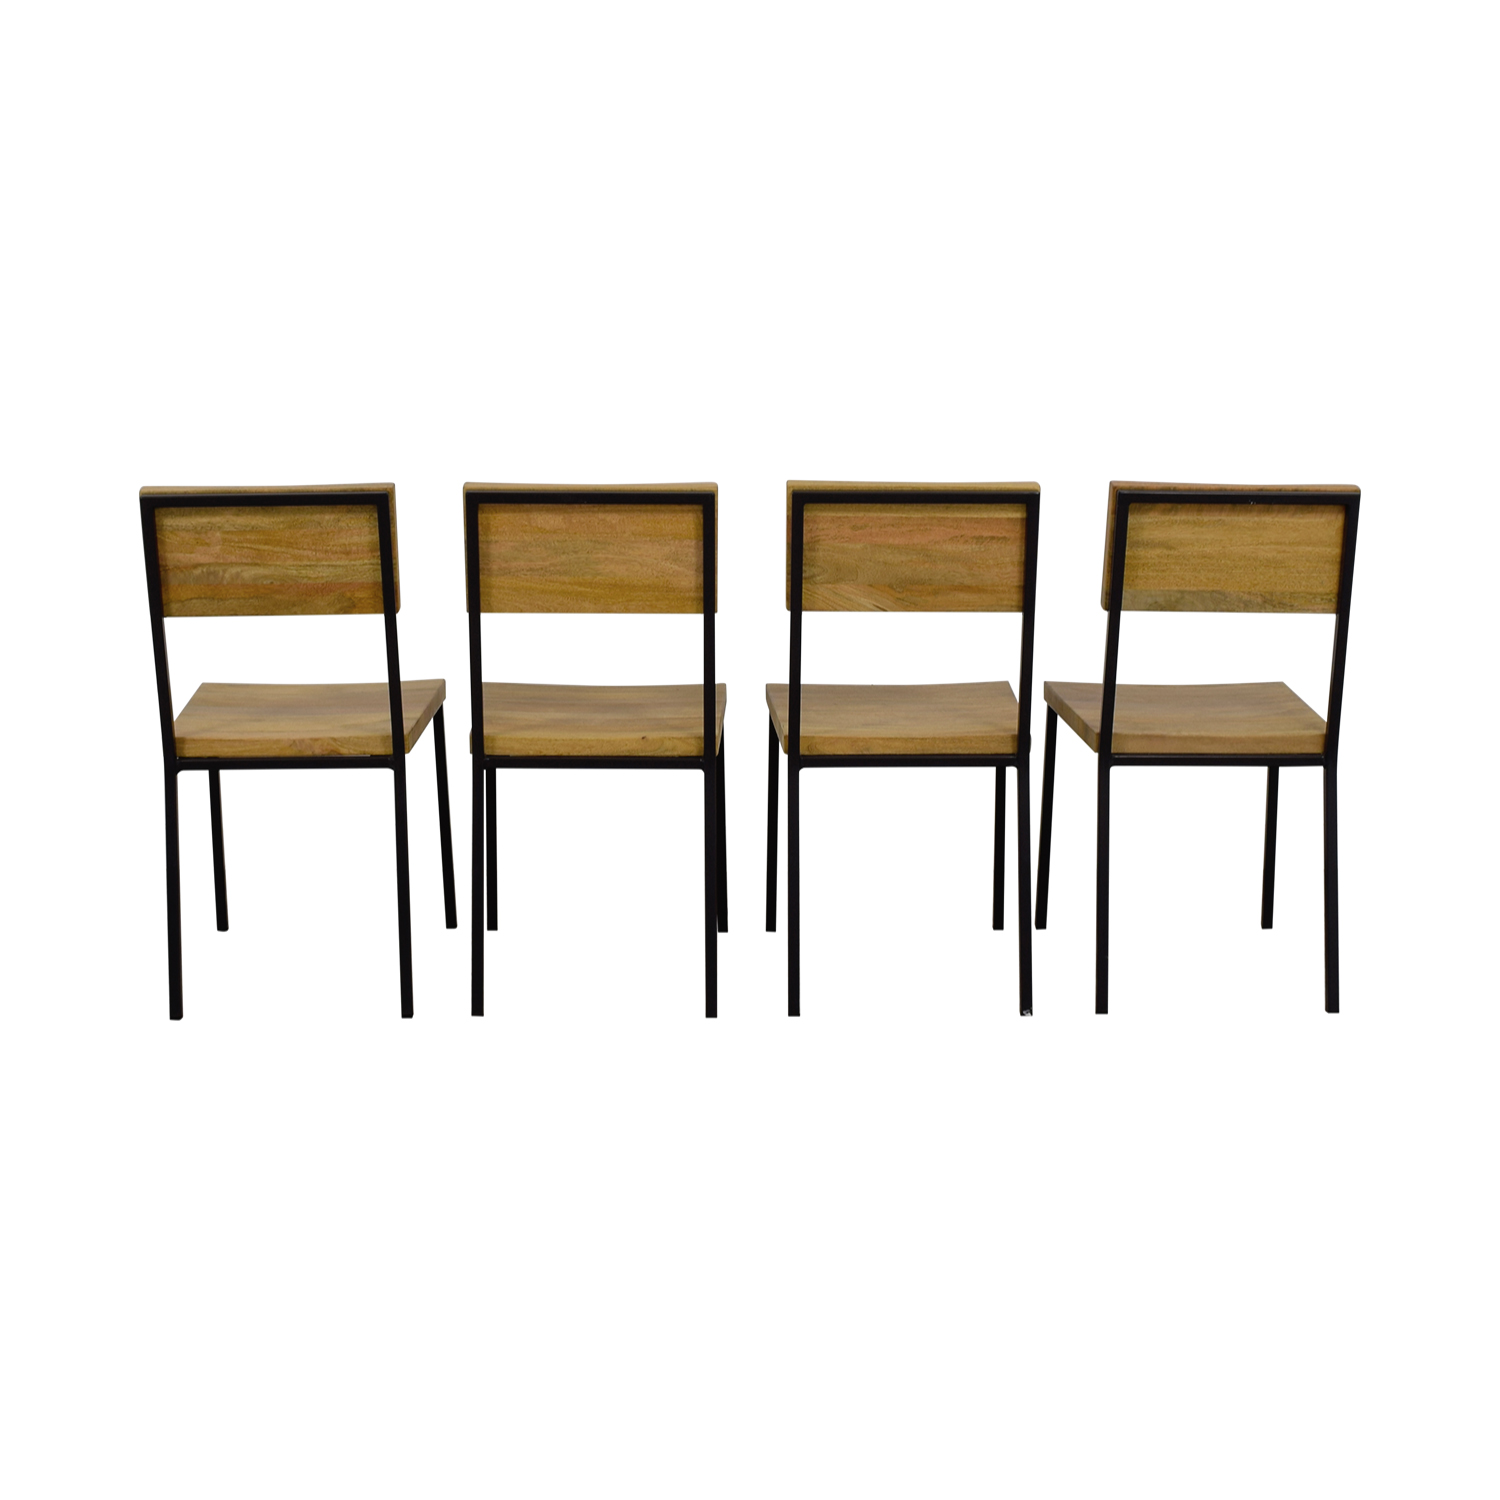 West Elm West Elm Rustic Dining Chairs price